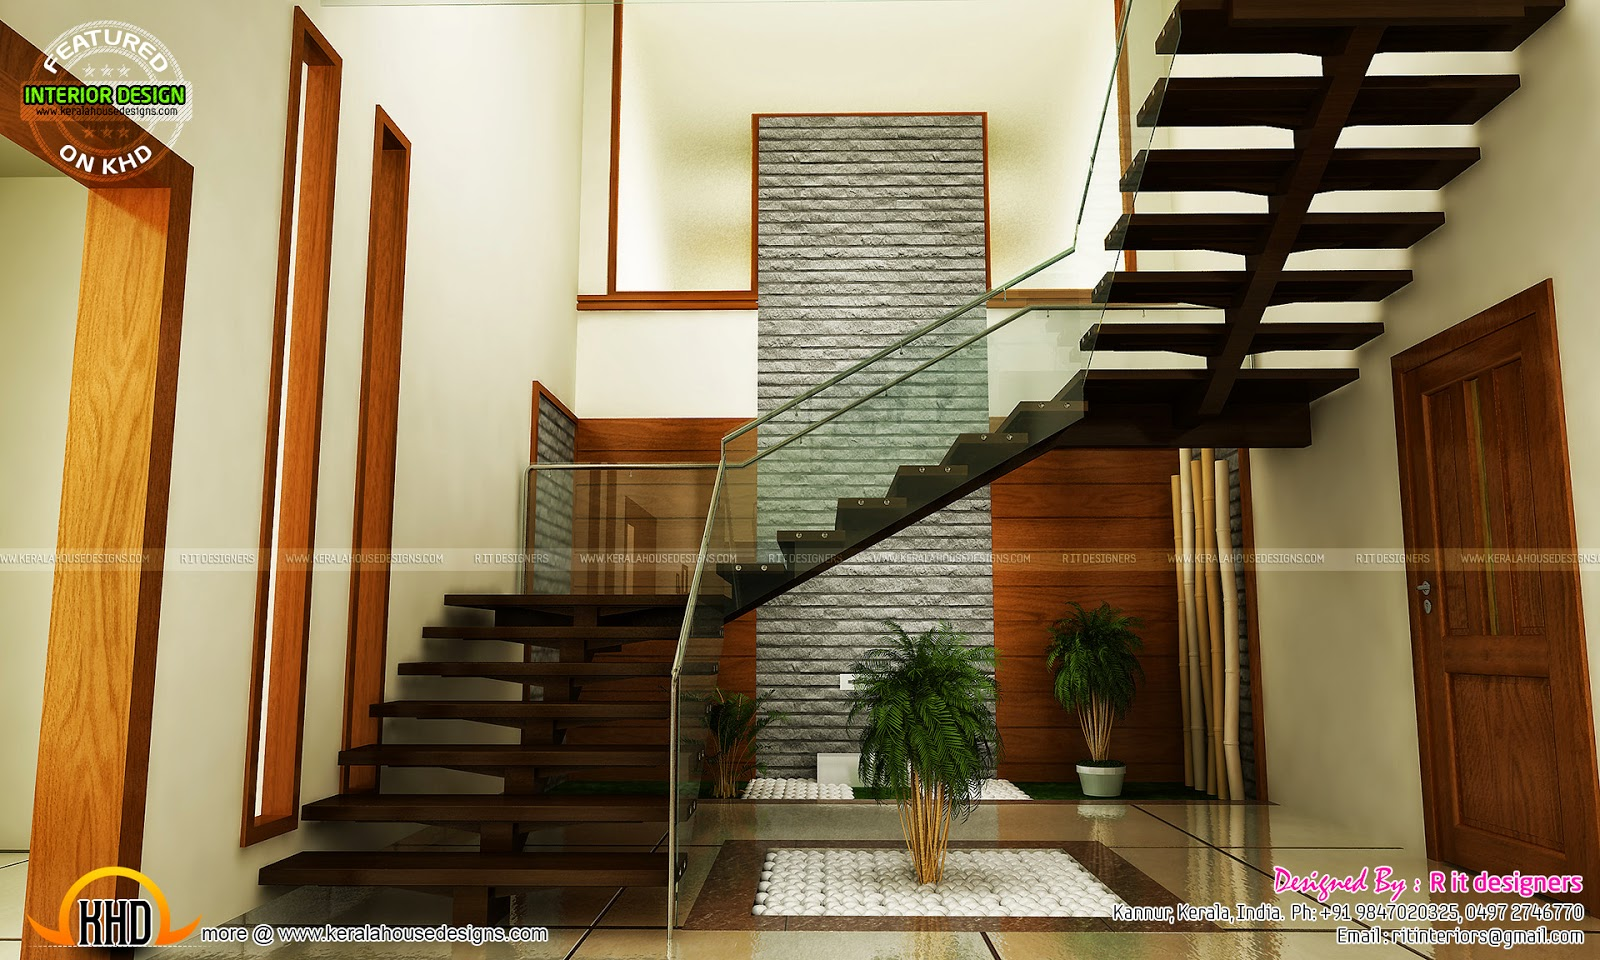 Staircase bedroom dining interiors kerala home design for How to design house interior